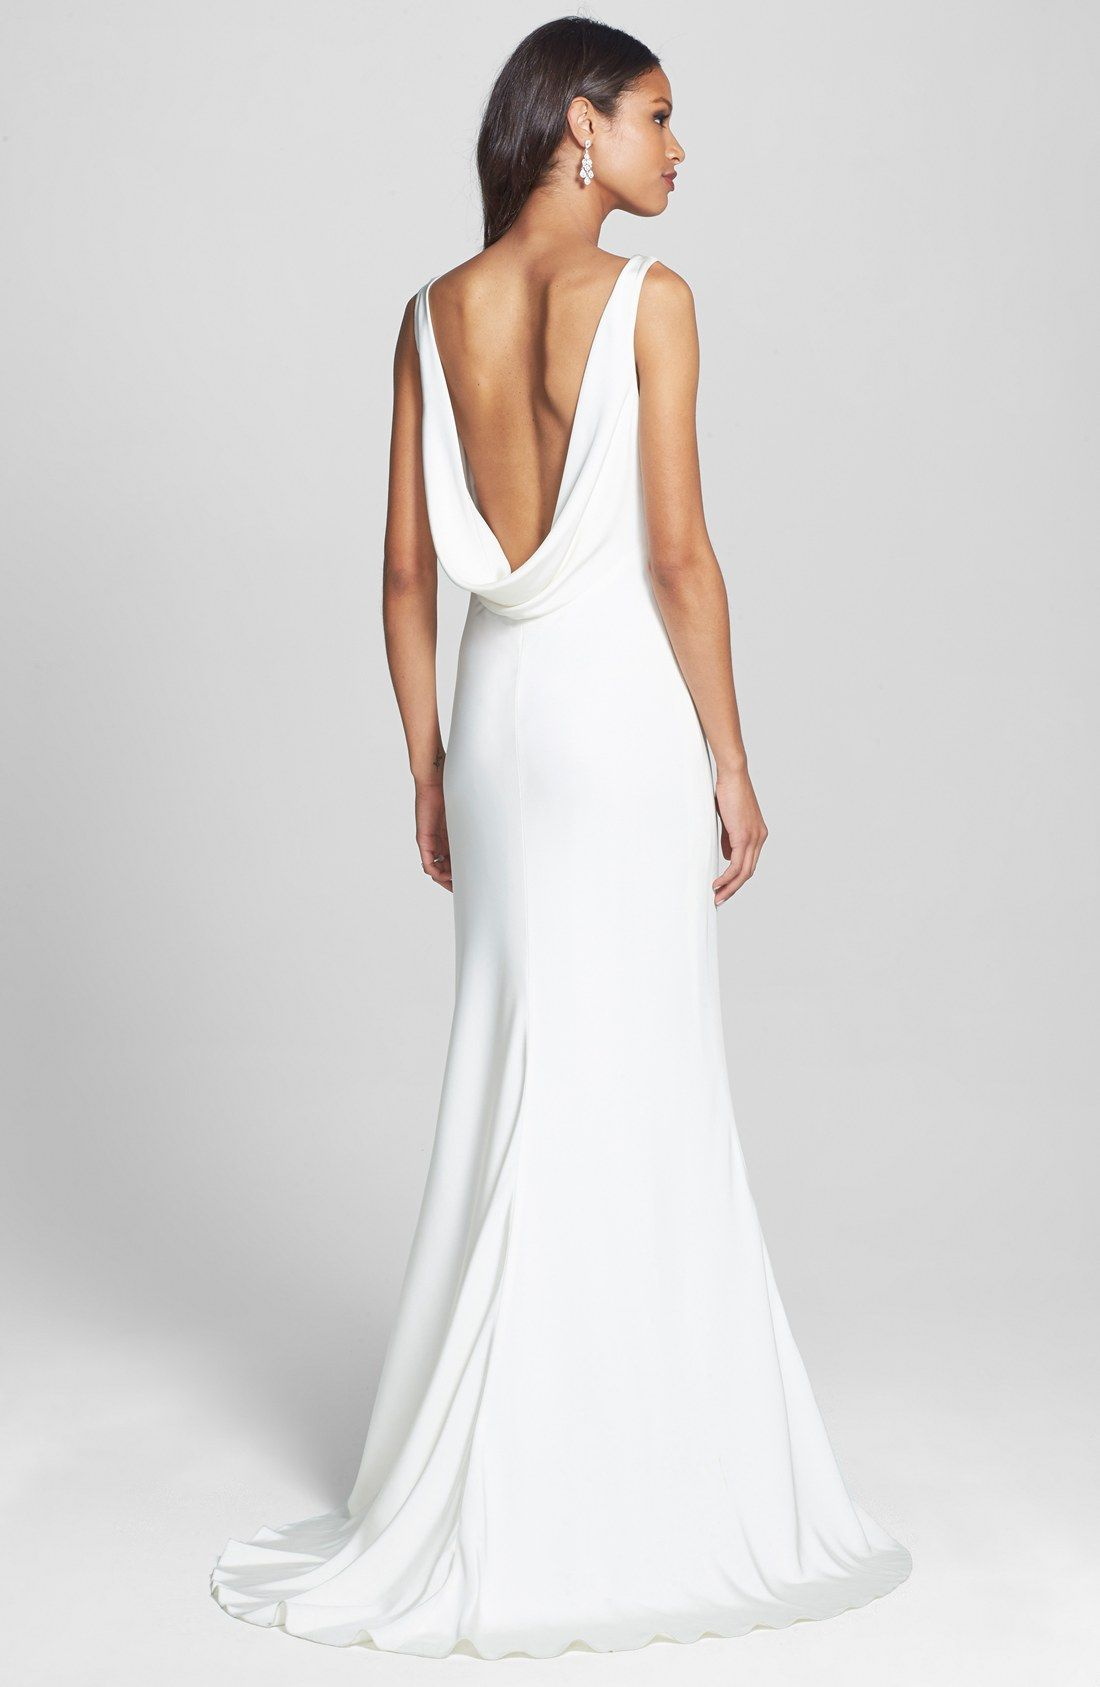 The neckline on this wedding gown is stunning! | Wedding Dresses in ...